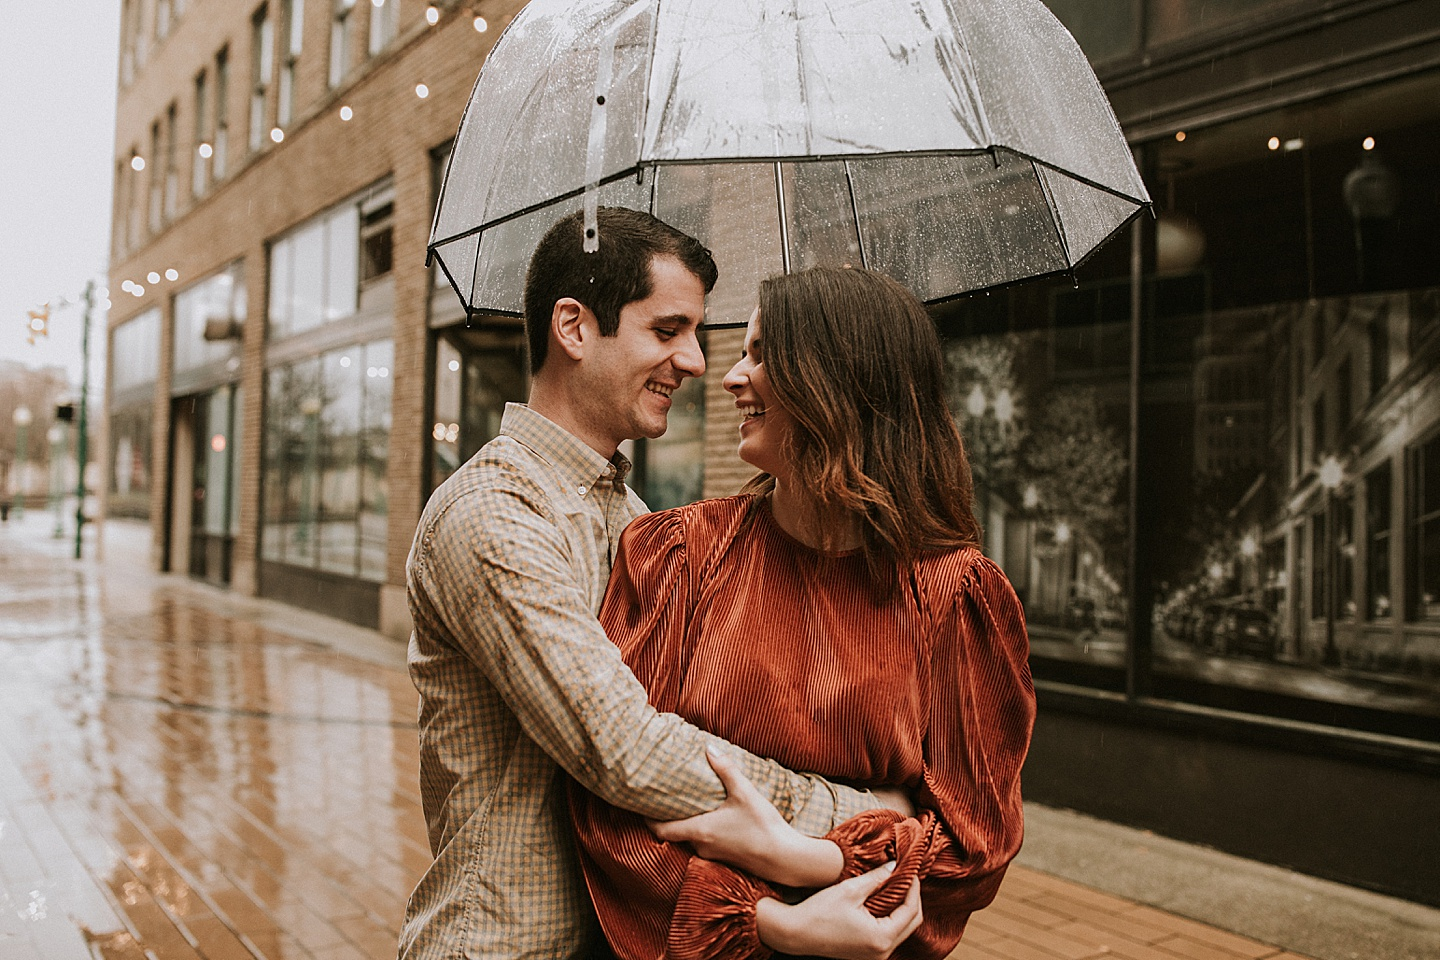 Couple portraits taken outside in the rain with clear umbrella